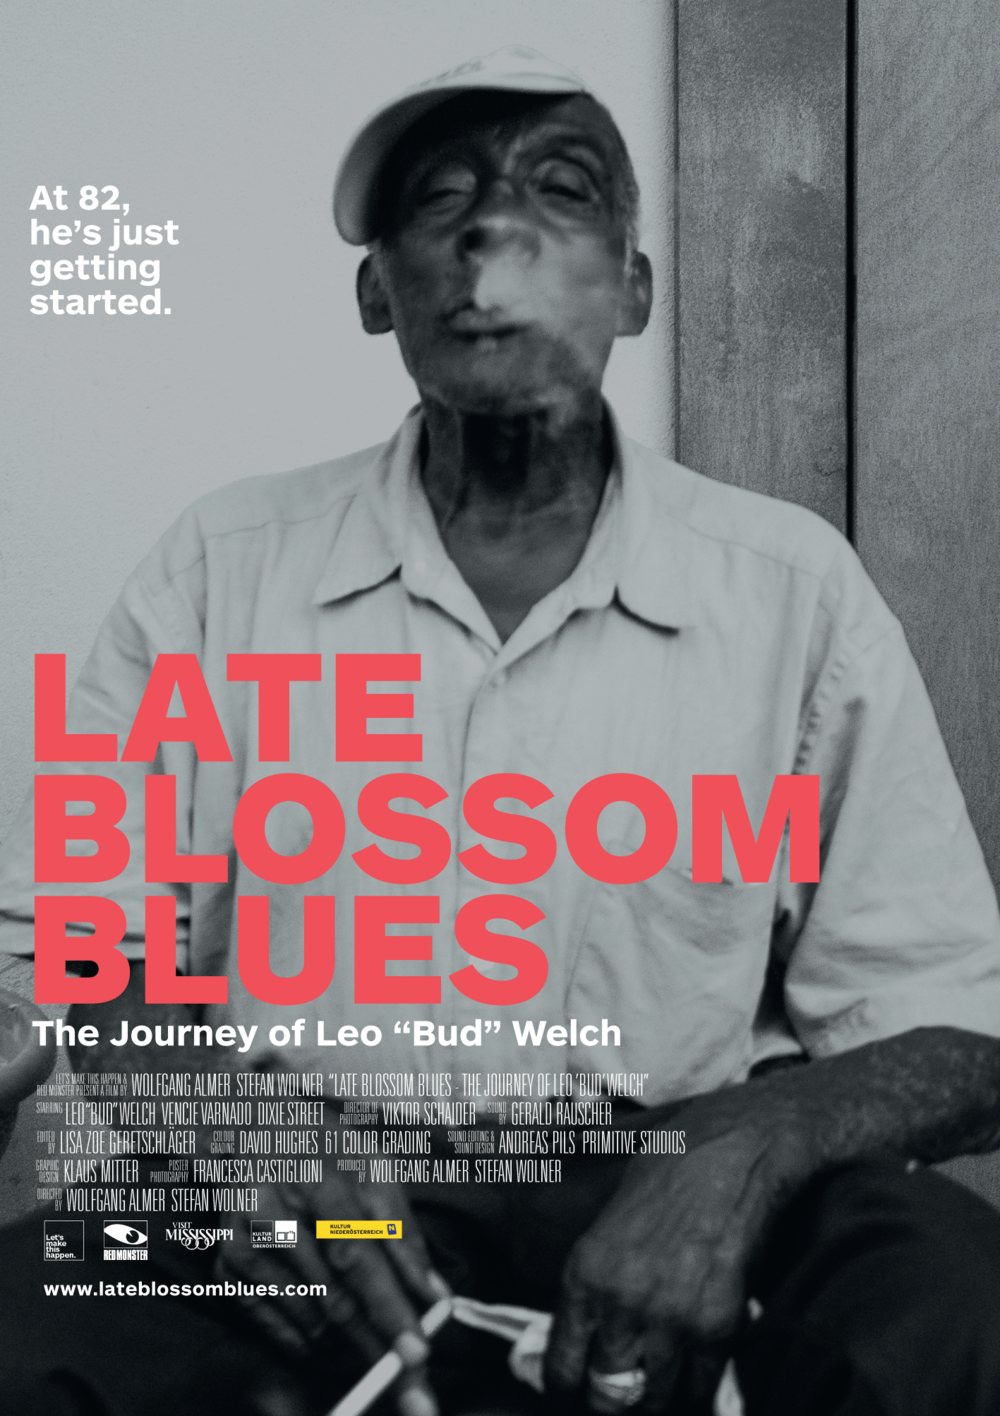 Leo Bud Welch is the focus of Late Blossom Blues at the Oxford Film Festival.